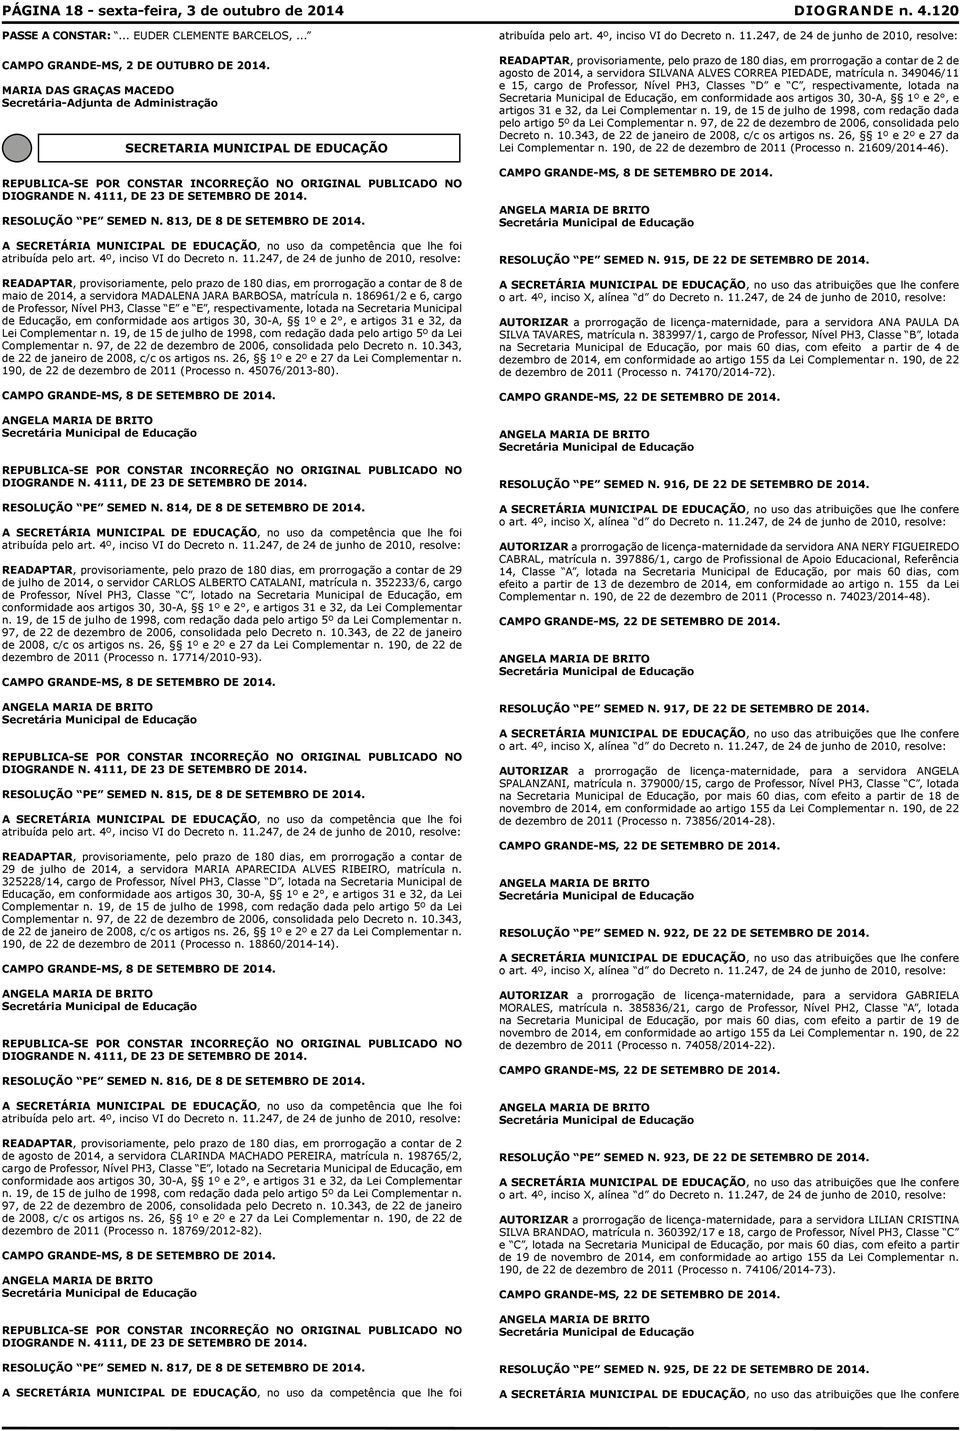 4º, inciso VI do Decreto n. 11.